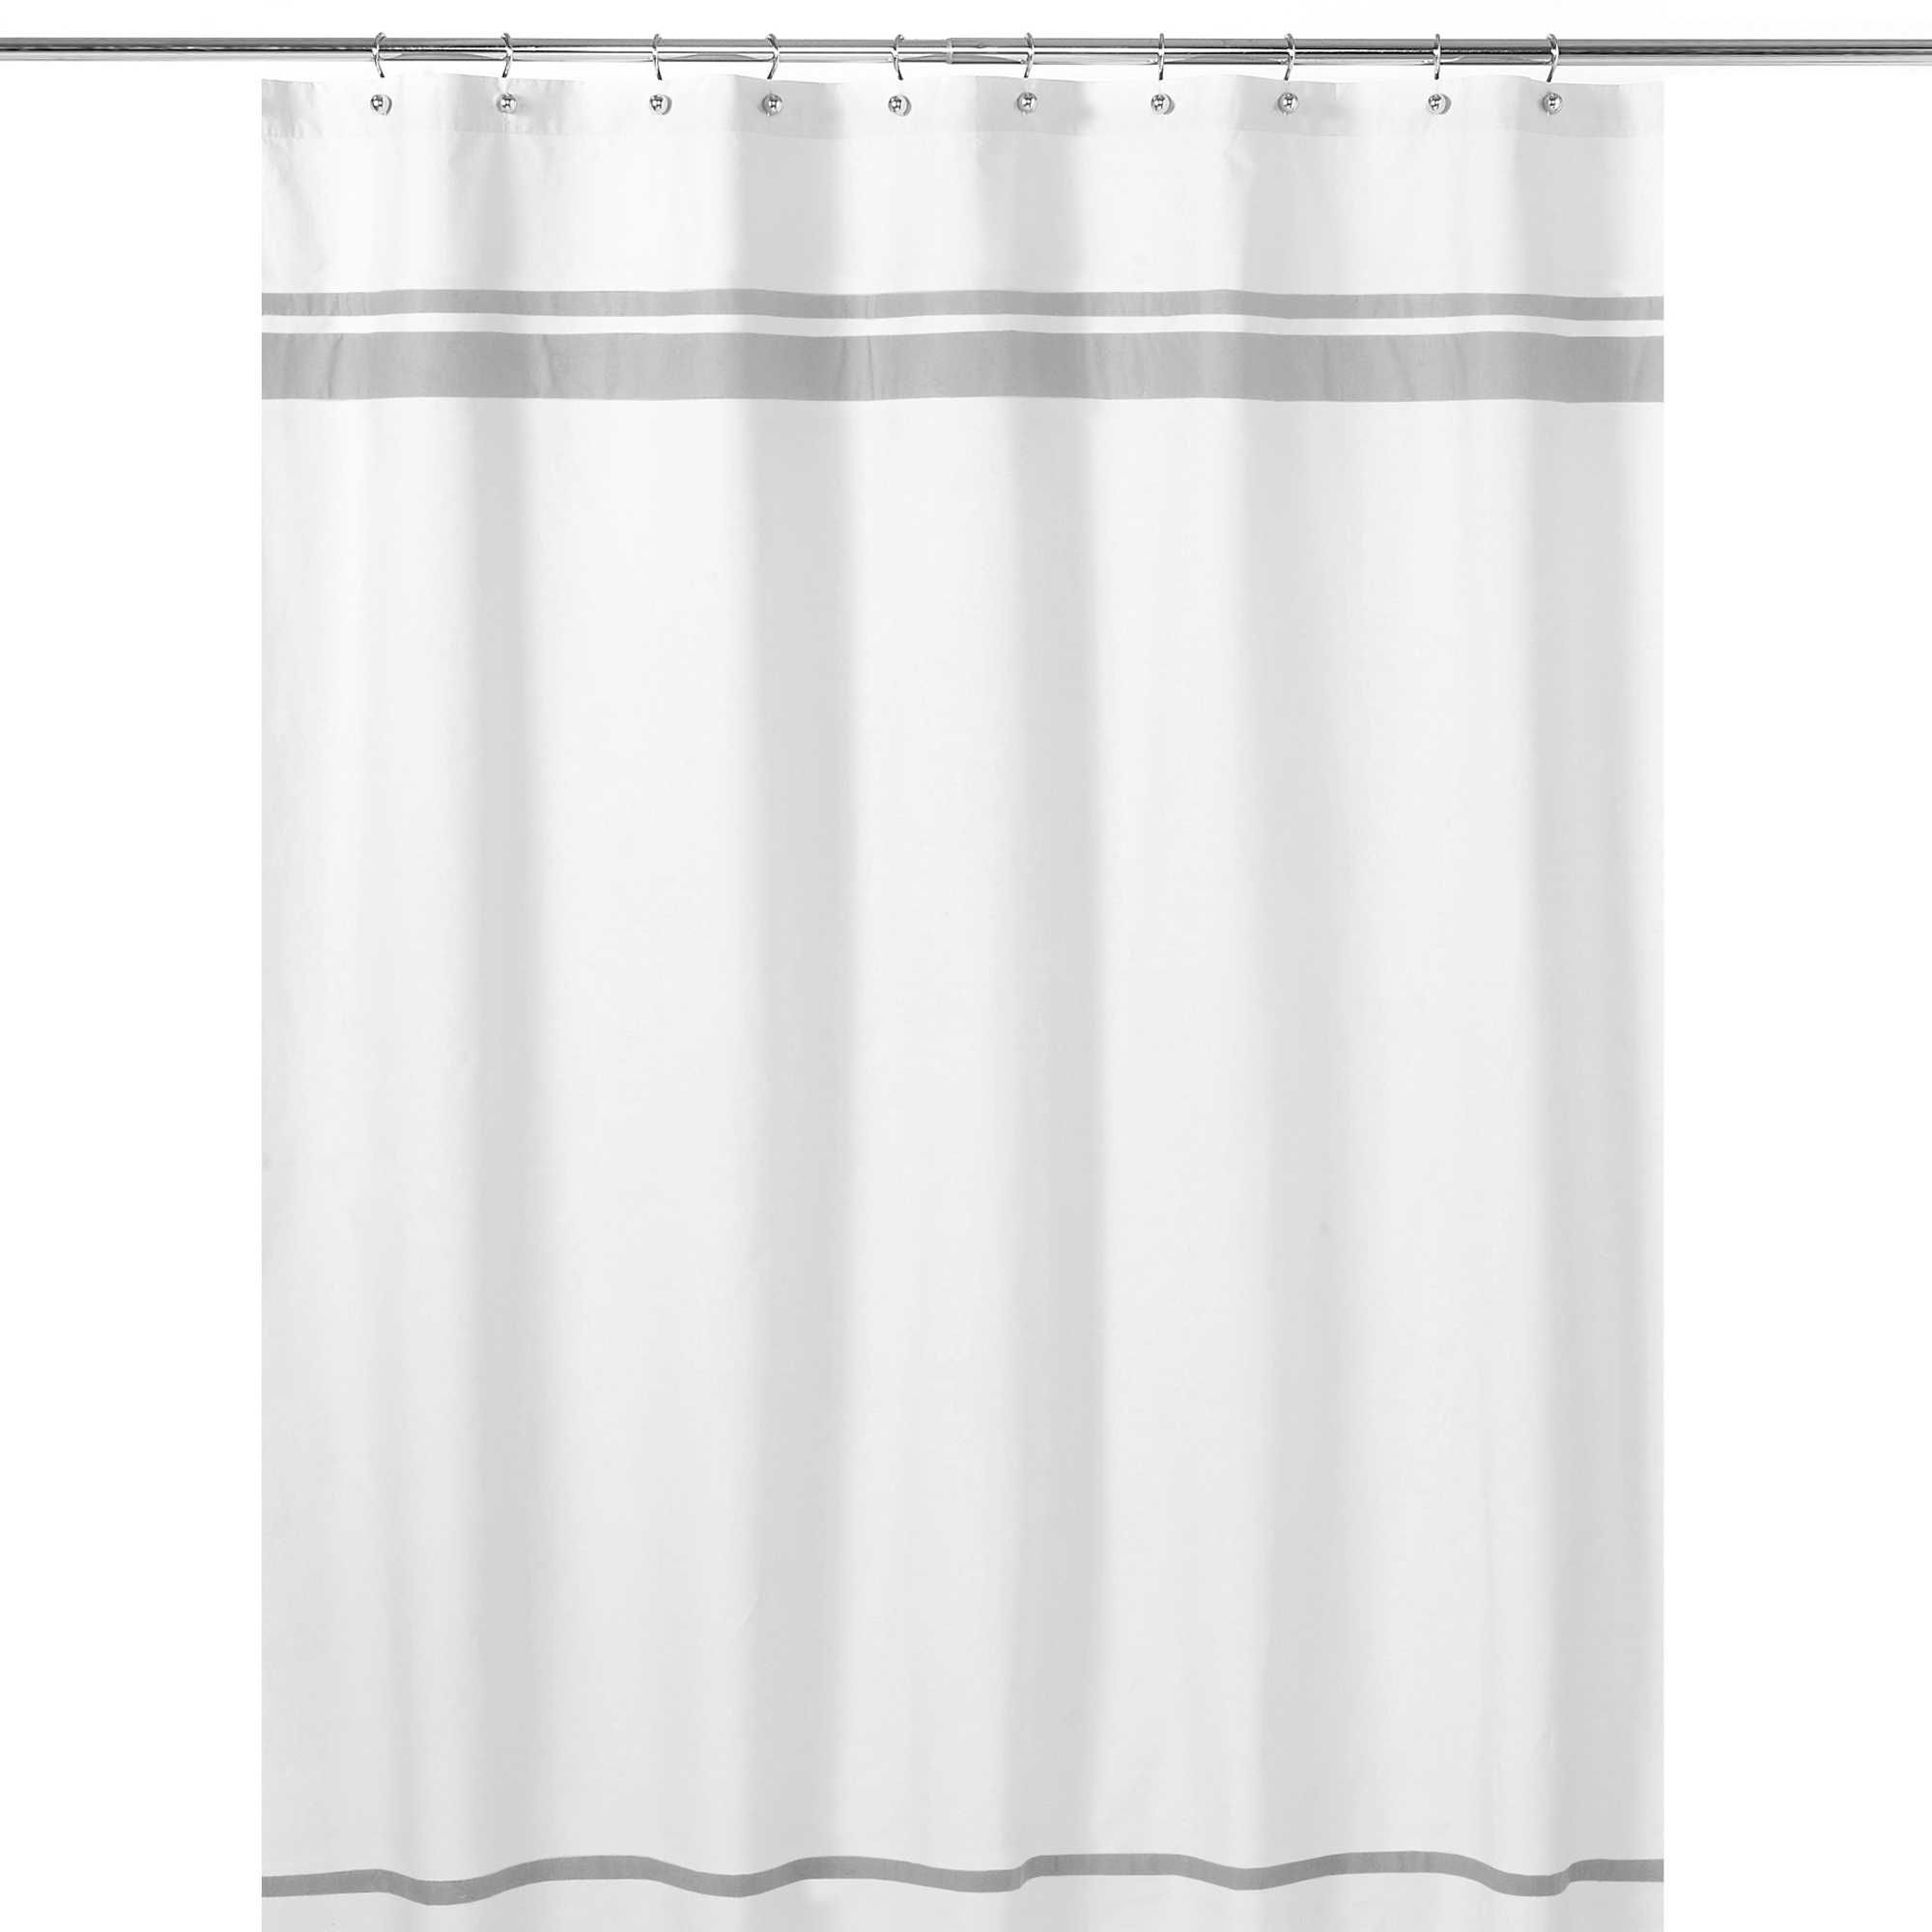 This Elegantly Designed Sweet Jojo Designs Hotel Shower Curtain Adds A Touch Of Sophistication And Luxurious